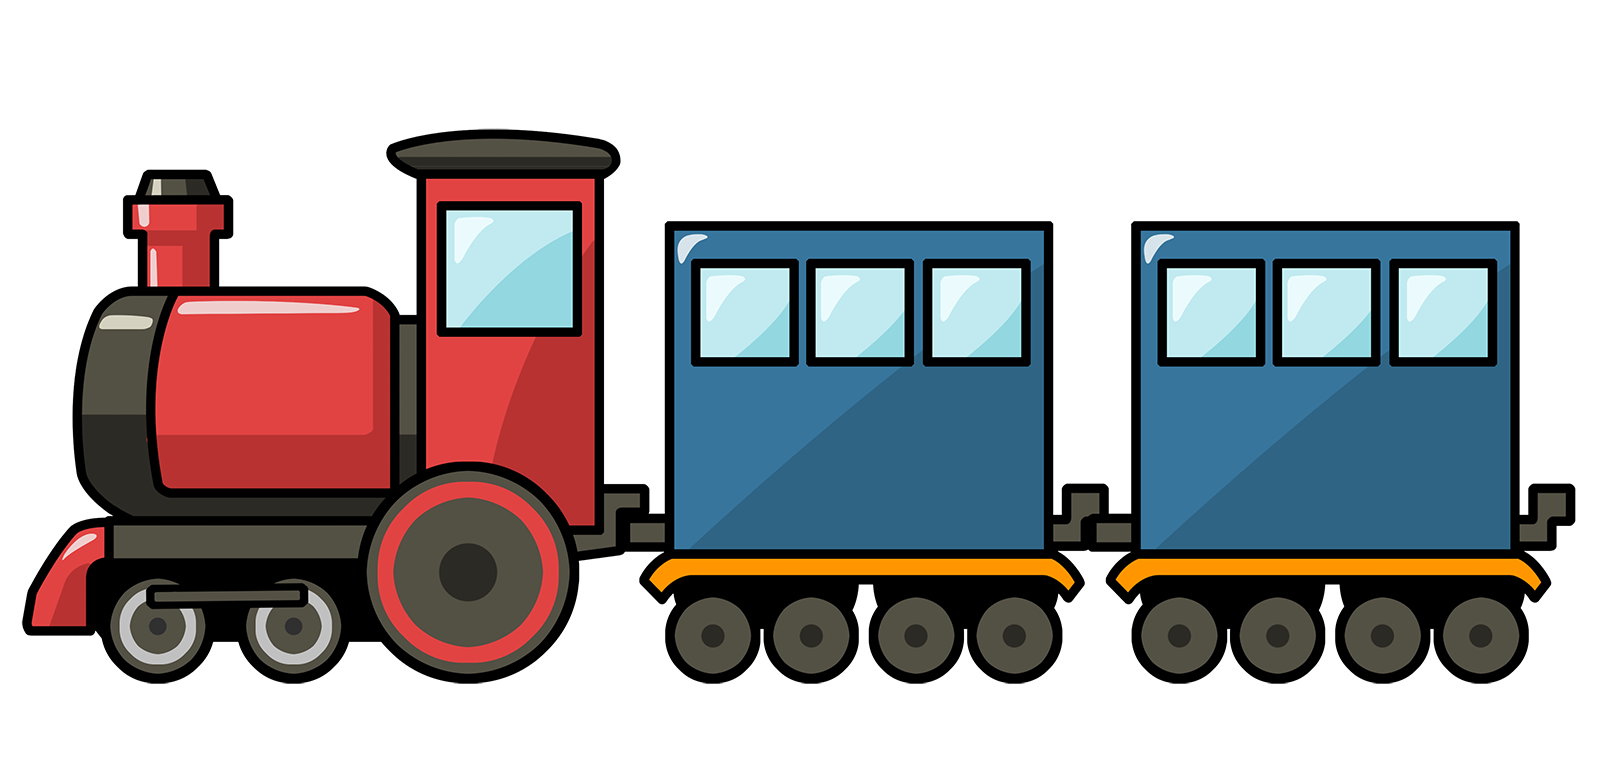 Engine clipart transparent. Choo train free images